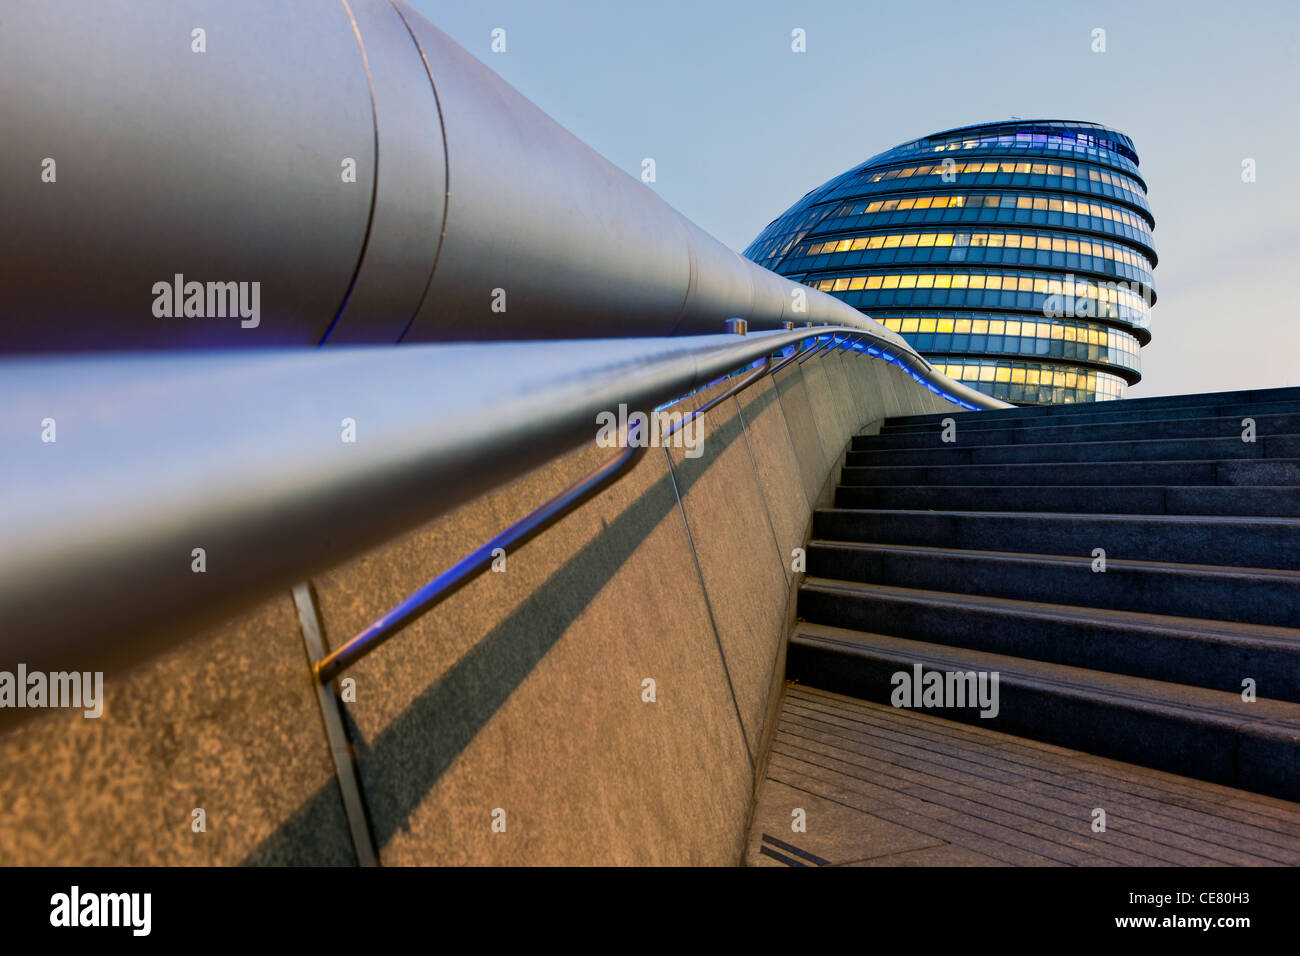 City Hall, London - headquarters of the Greater London Authority (GLA) which comprises the Mayor of London and London - Stock Image